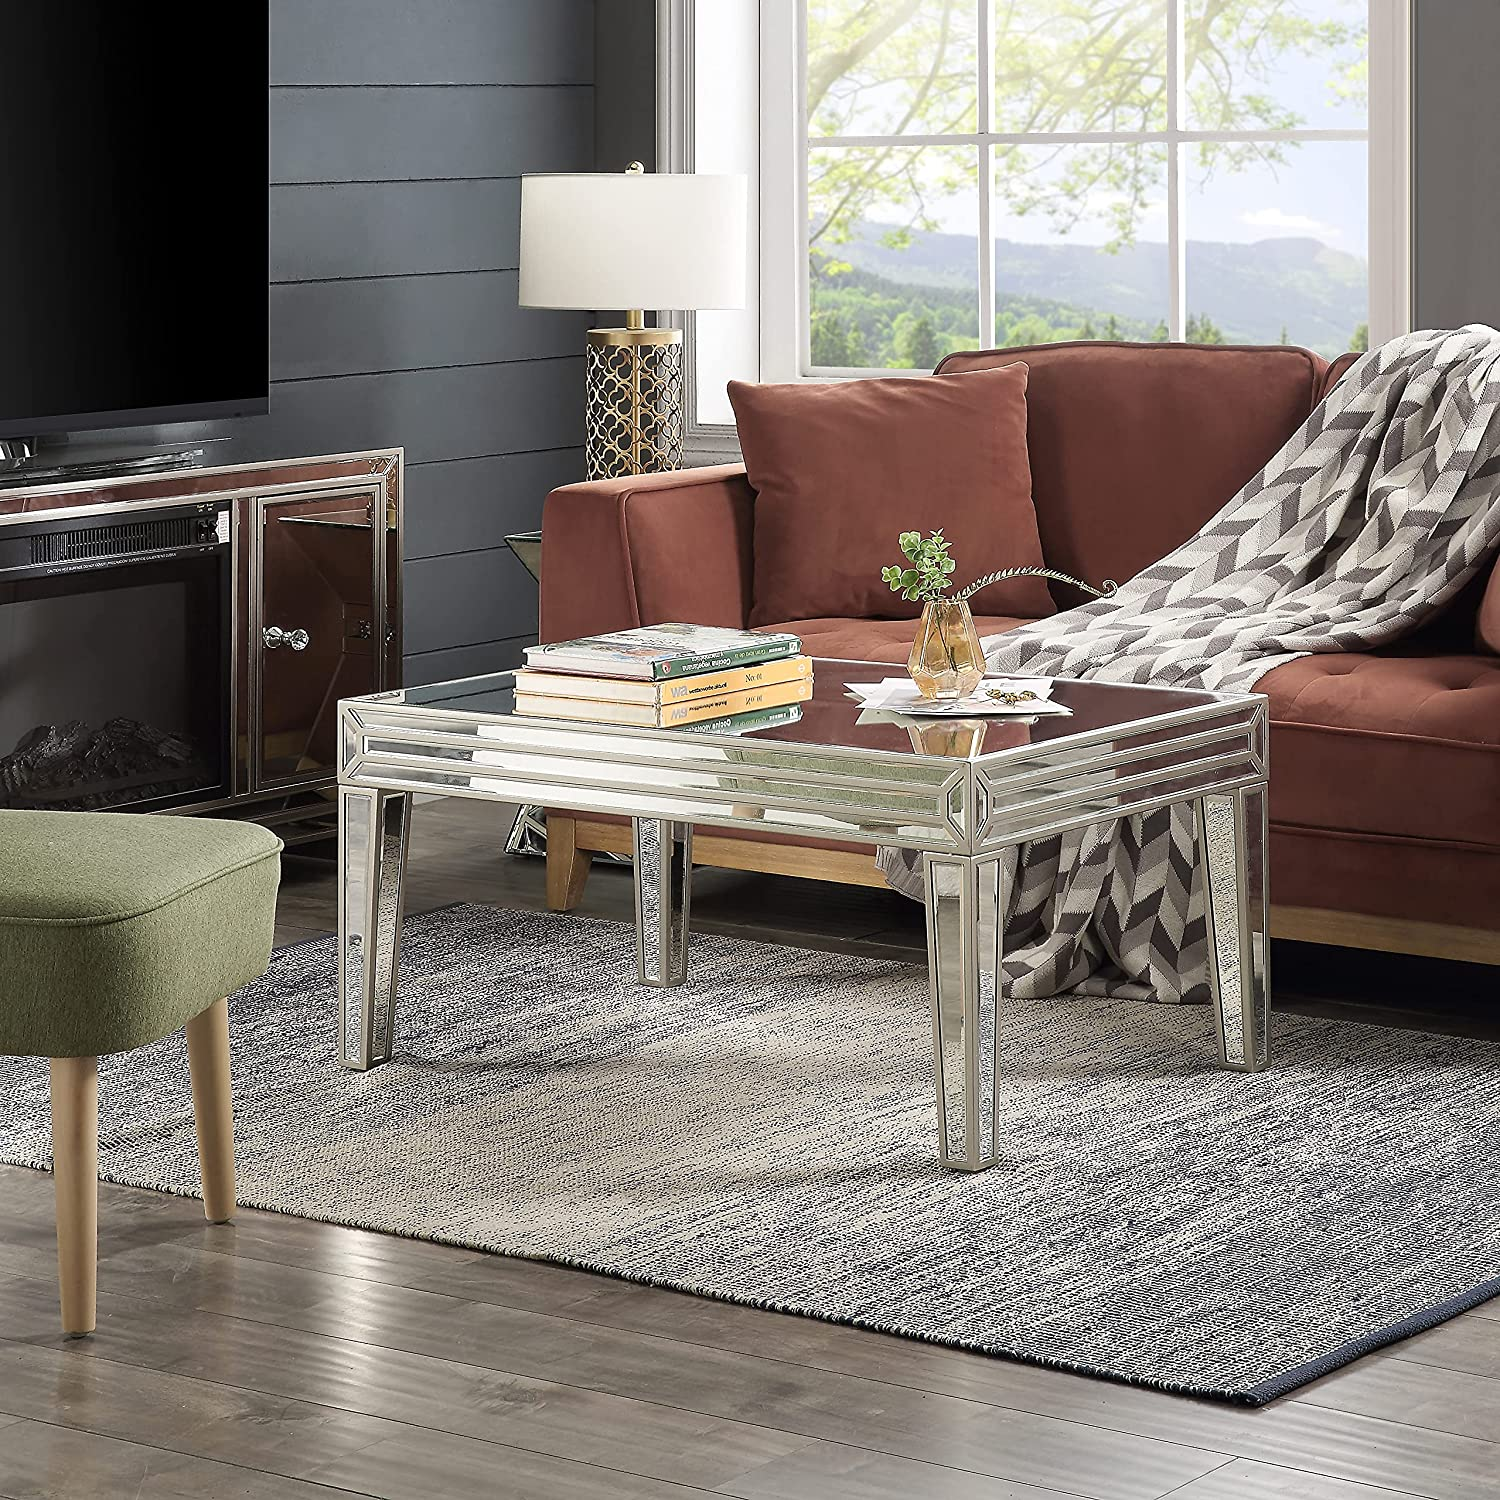 Mirrored Coffee Table, Golden Lines Coffee Table with Unique Desigin, Rectangle Silver Accent Table, Modern Design Luxury Contemporary Furniture, Partial Assembly for Living Room from Mireo Furniture